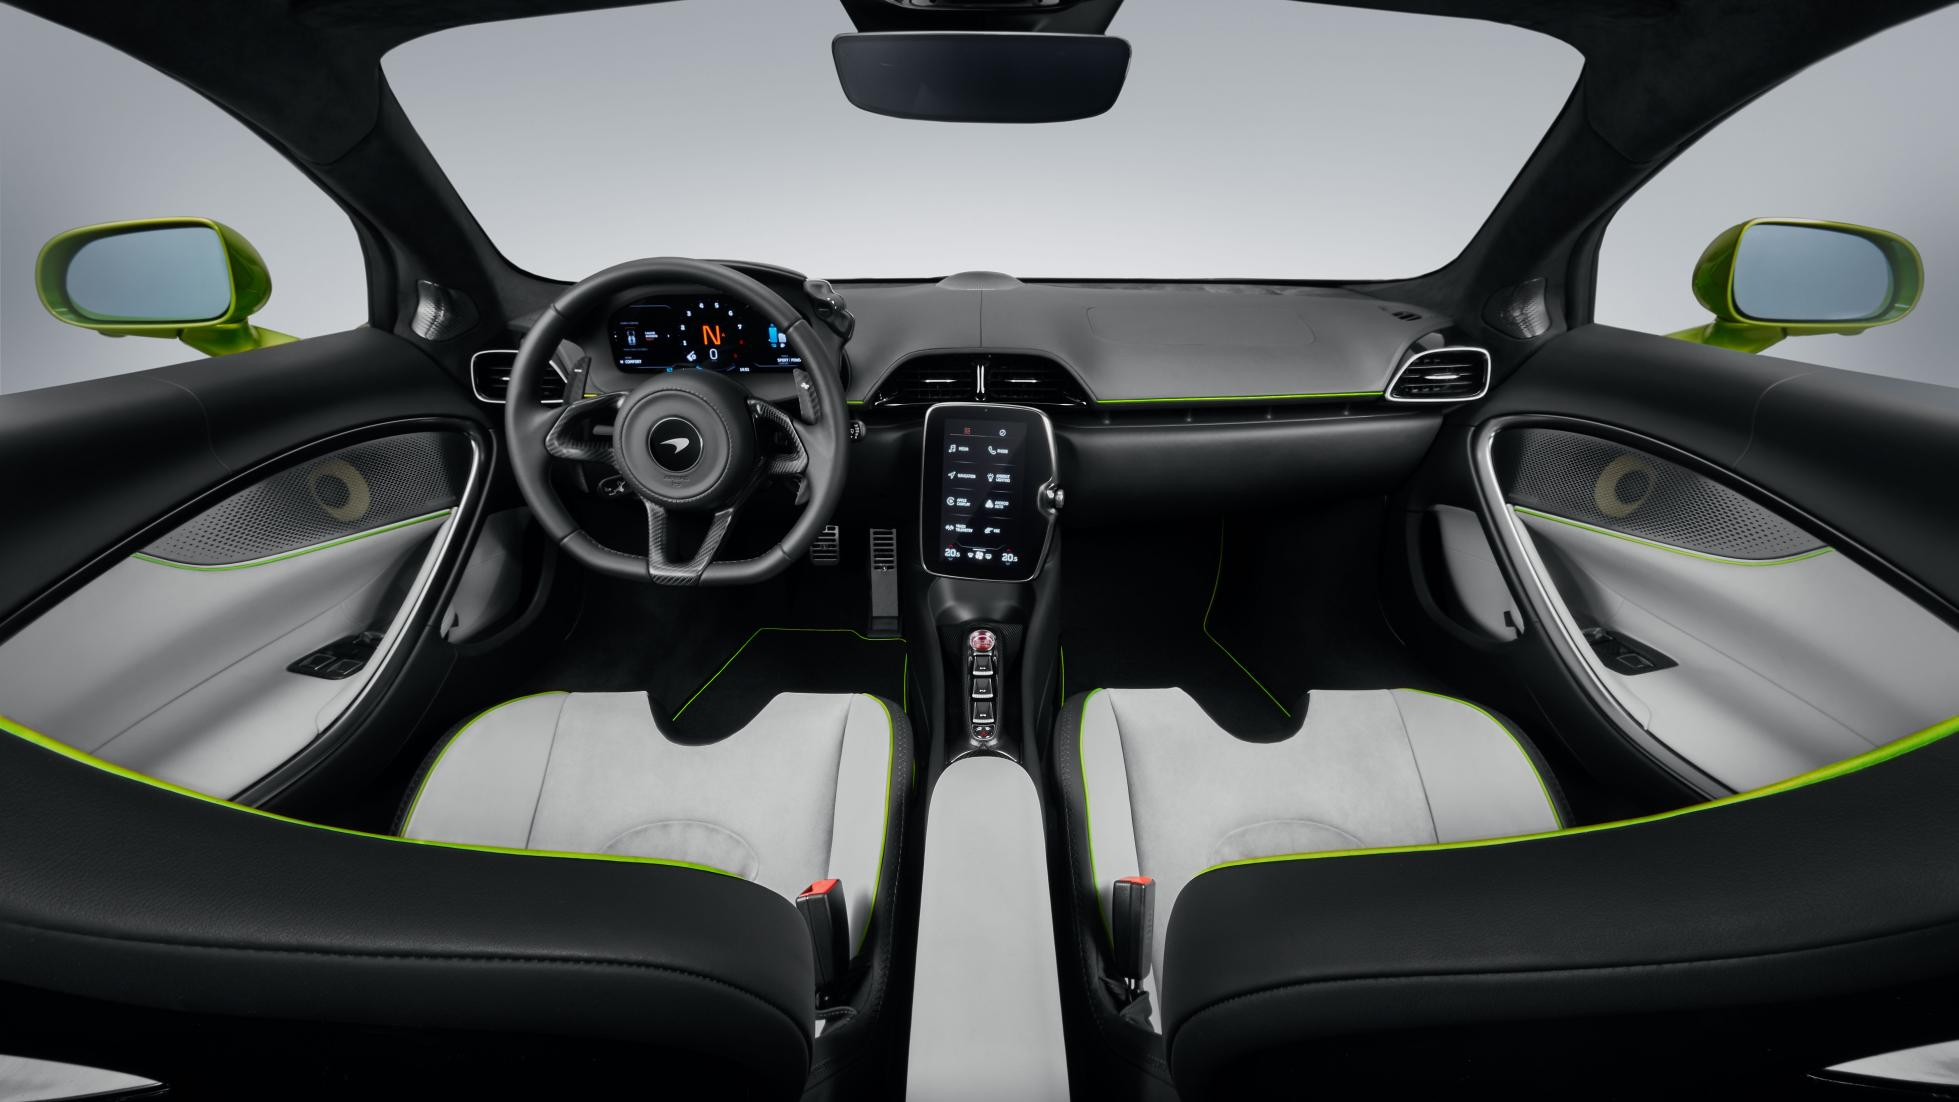 McLaren Artura in Flux Green dashboard feature